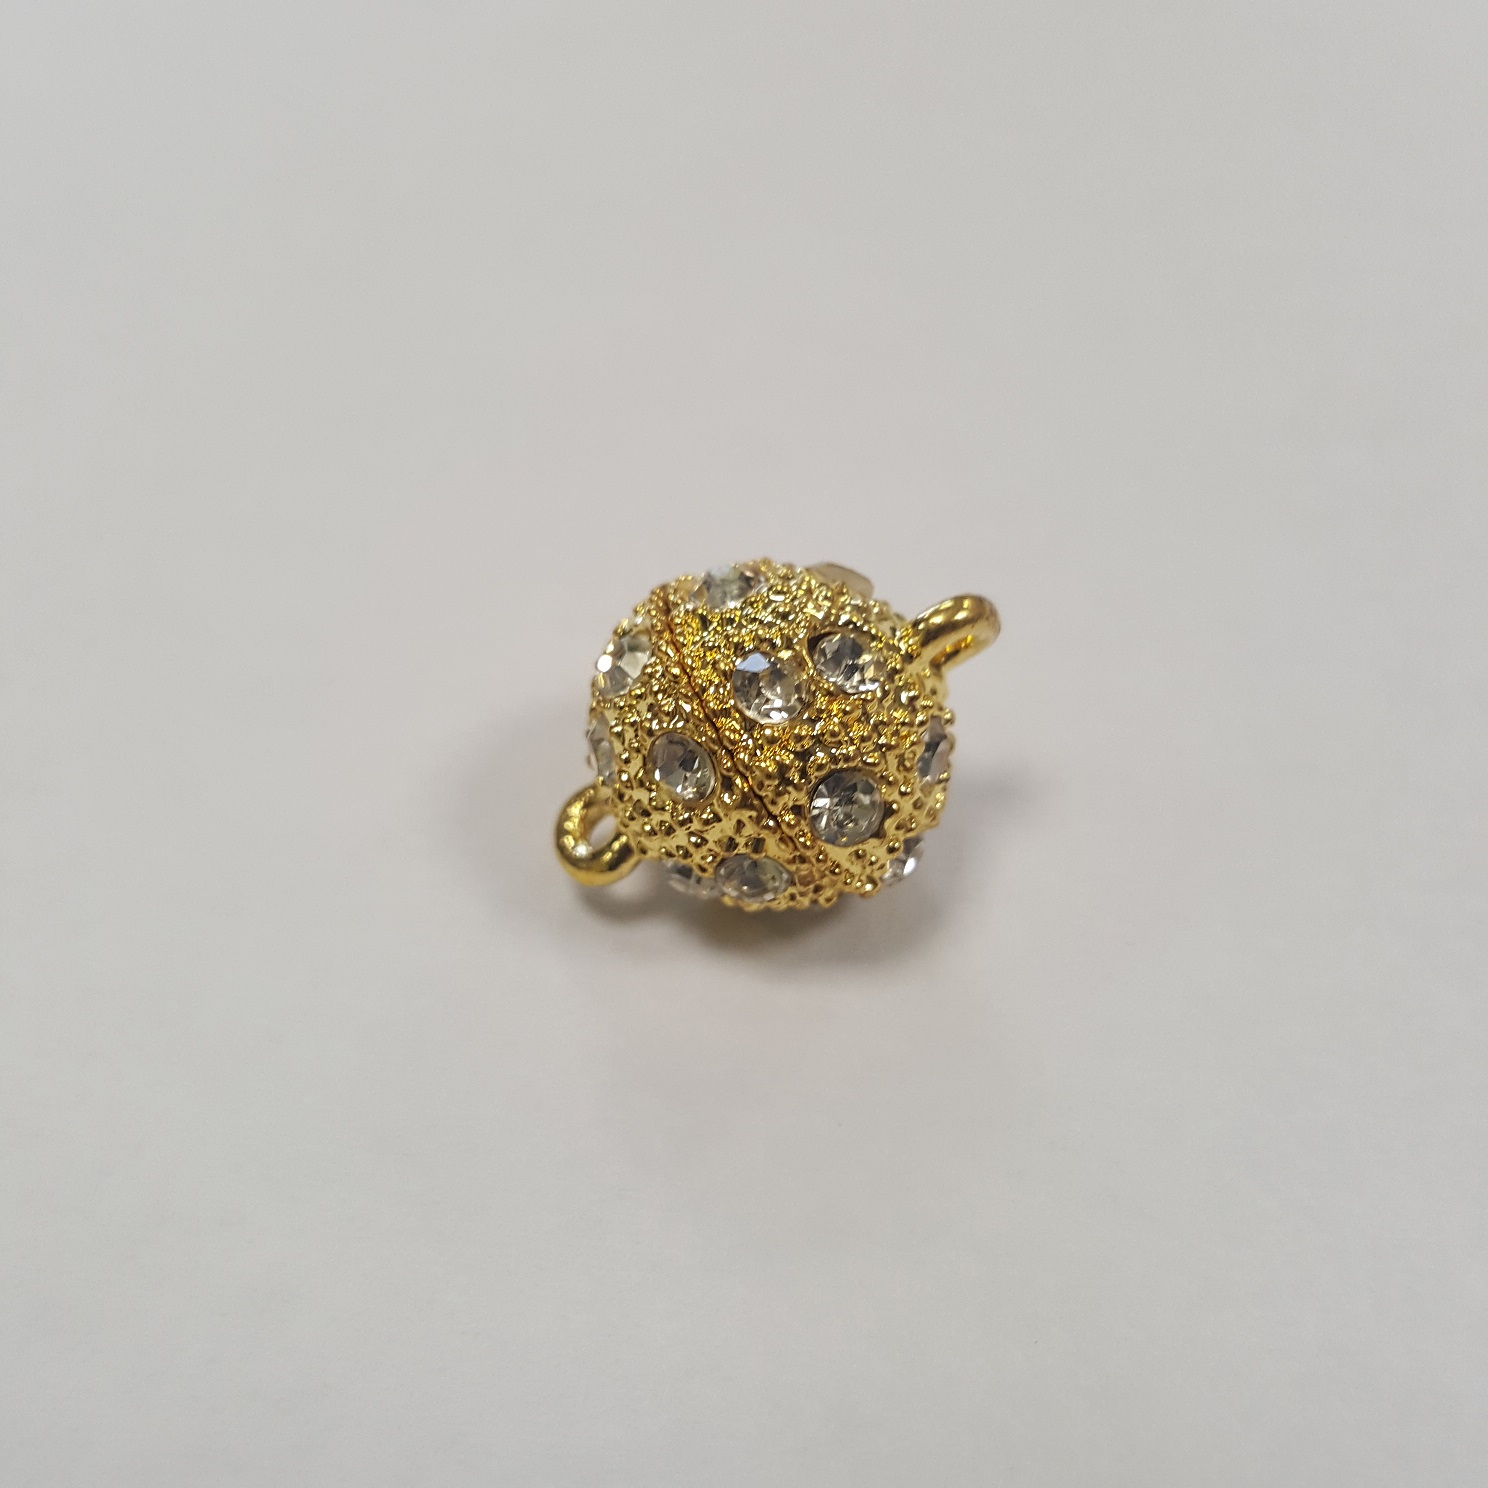 Calamita strass 10mm - oro (1pz)